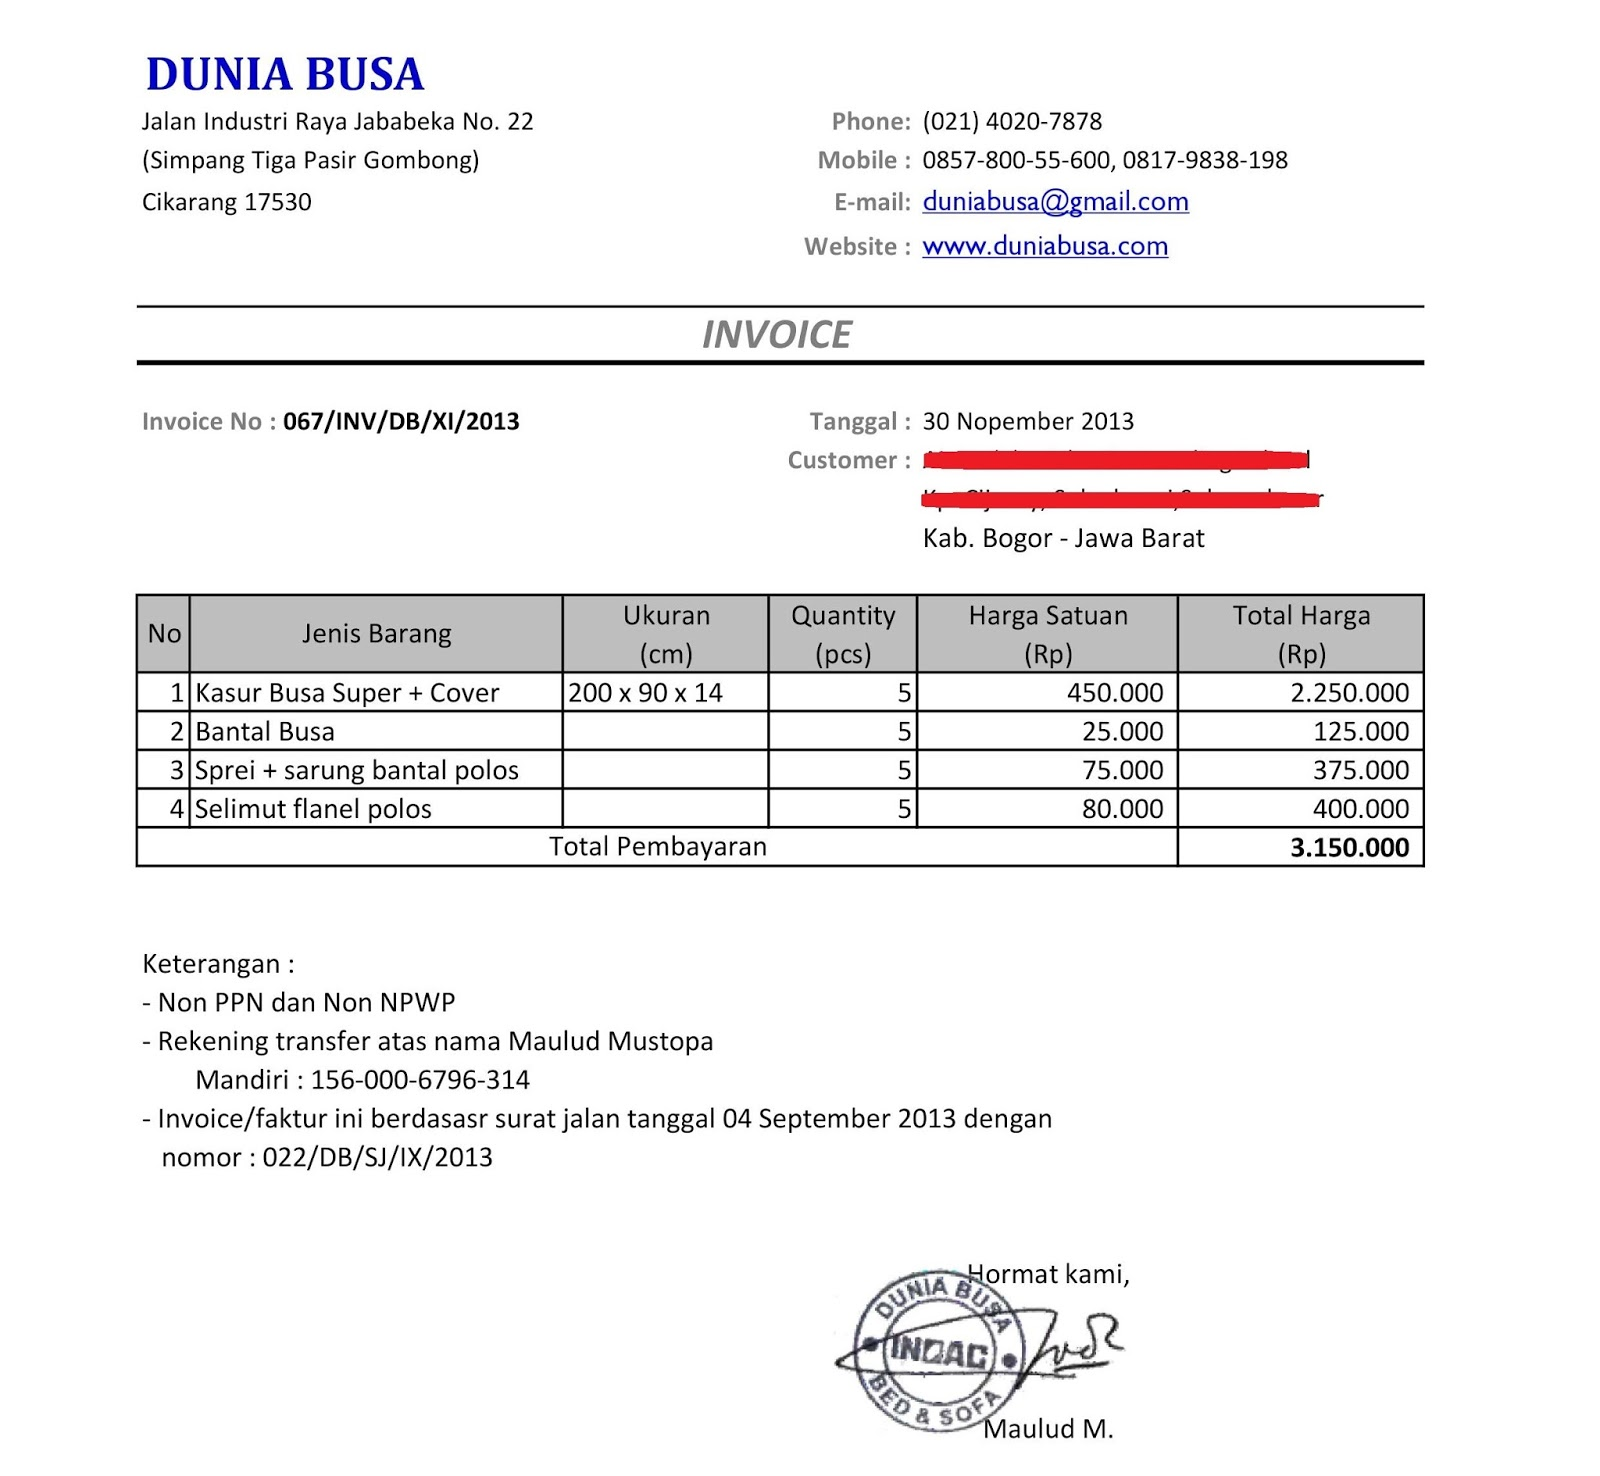 Usdgus  Scenic Free Invoice Online  Create Invoice Online  Invoice Template  With Glamorous Contoh Format Invoice Atau Surat Tagihan  Brankas Arsip  Free Invoice Online With Attractive Requirements For An Invoice Also Customized Invoices In Addition What Must An Invoice Contain And Nch Software Invoice As Well As Send Invoice With Paypal Additionally Vat Invoice Rules From Sklepco With Usdgus  Glamorous Free Invoice Online  Create Invoice Online  Invoice Template  With Attractive Contoh Format Invoice Atau Surat Tagihan  Brankas Arsip  Free Invoice Online And Scenic Requirements For An Invoice Also Customized Invoices In Addition What Must An Invoice Contain From Sklepco